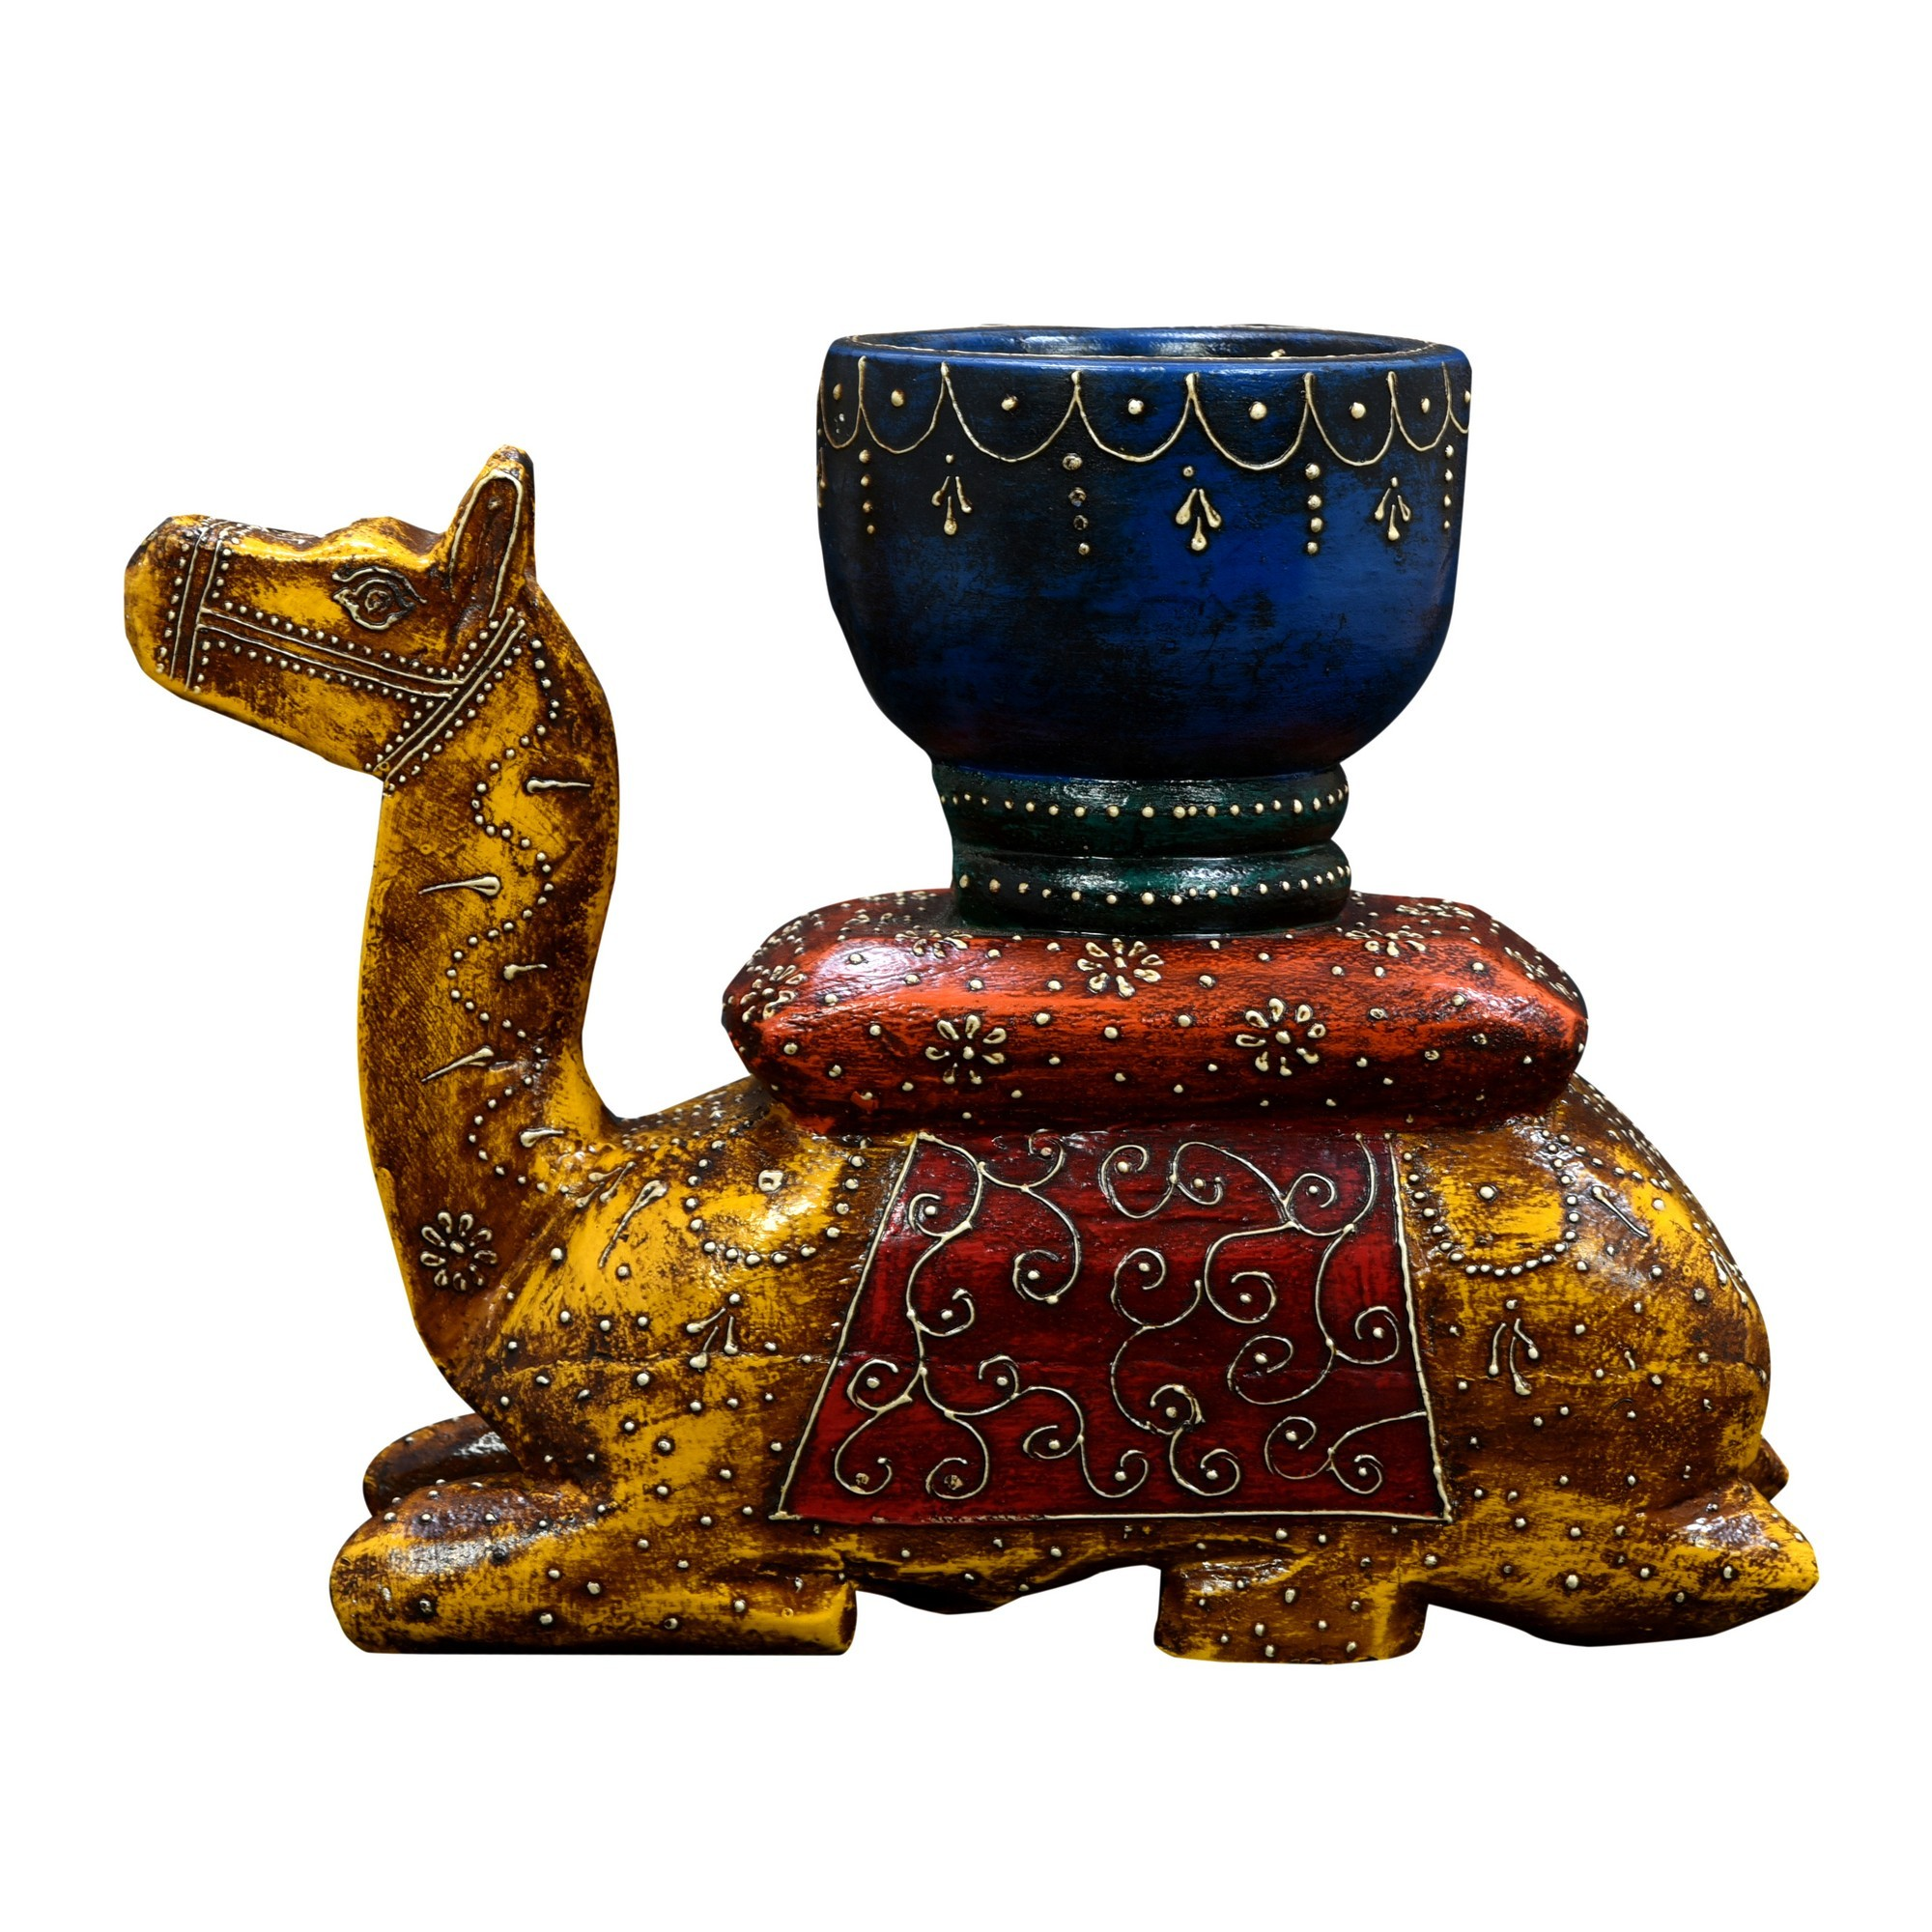 Crisano Hand Painted Timber Camel Candle Holder